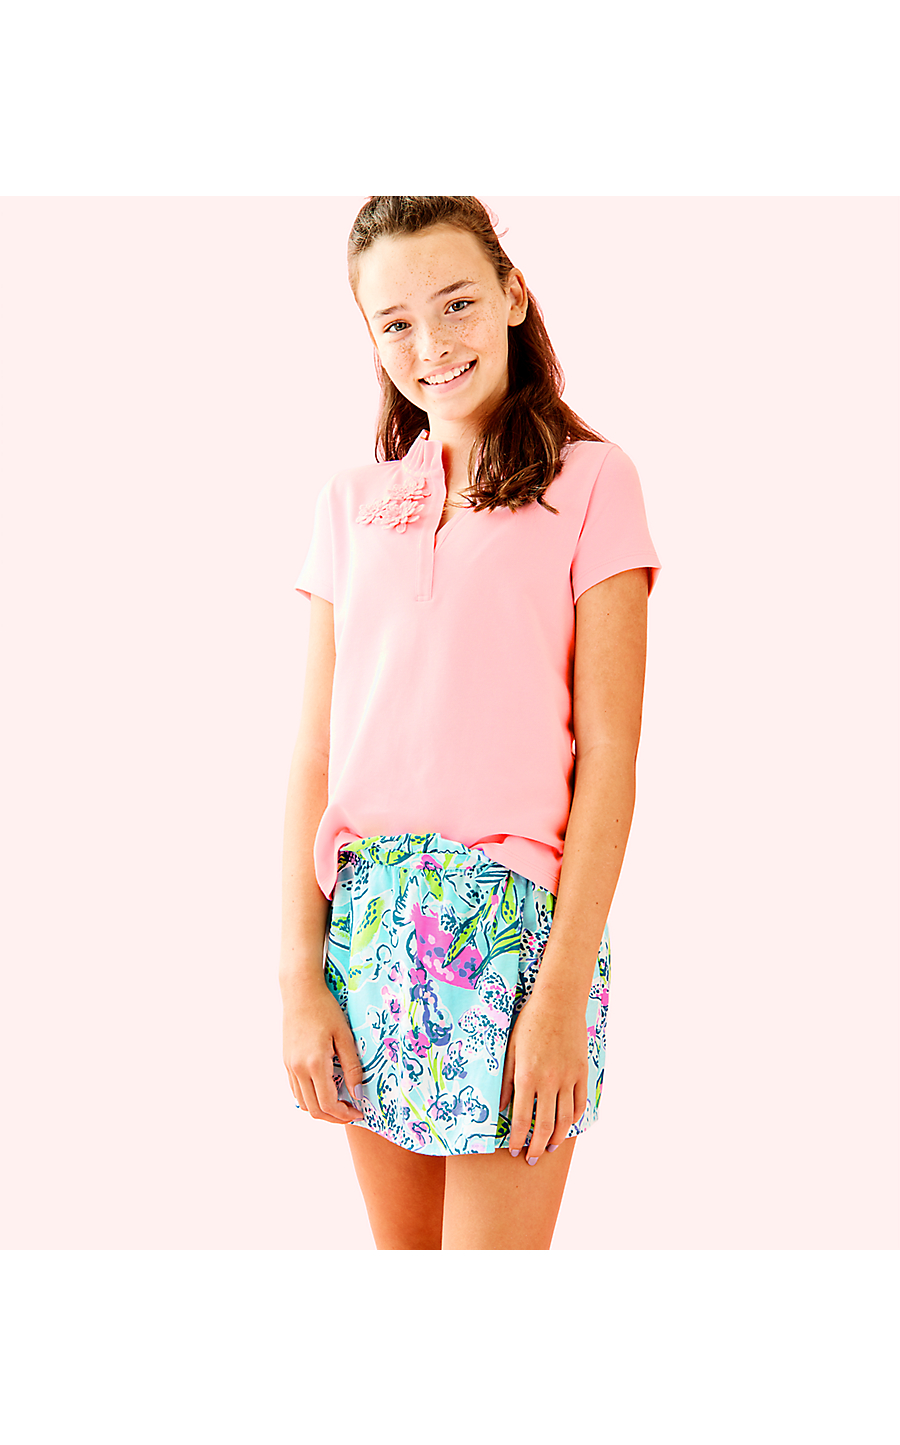 ae7acde17 KARLA SKORT -BALI BLUE SWAY THIS WAY - Lilly Pulitzer Store - Life's ...